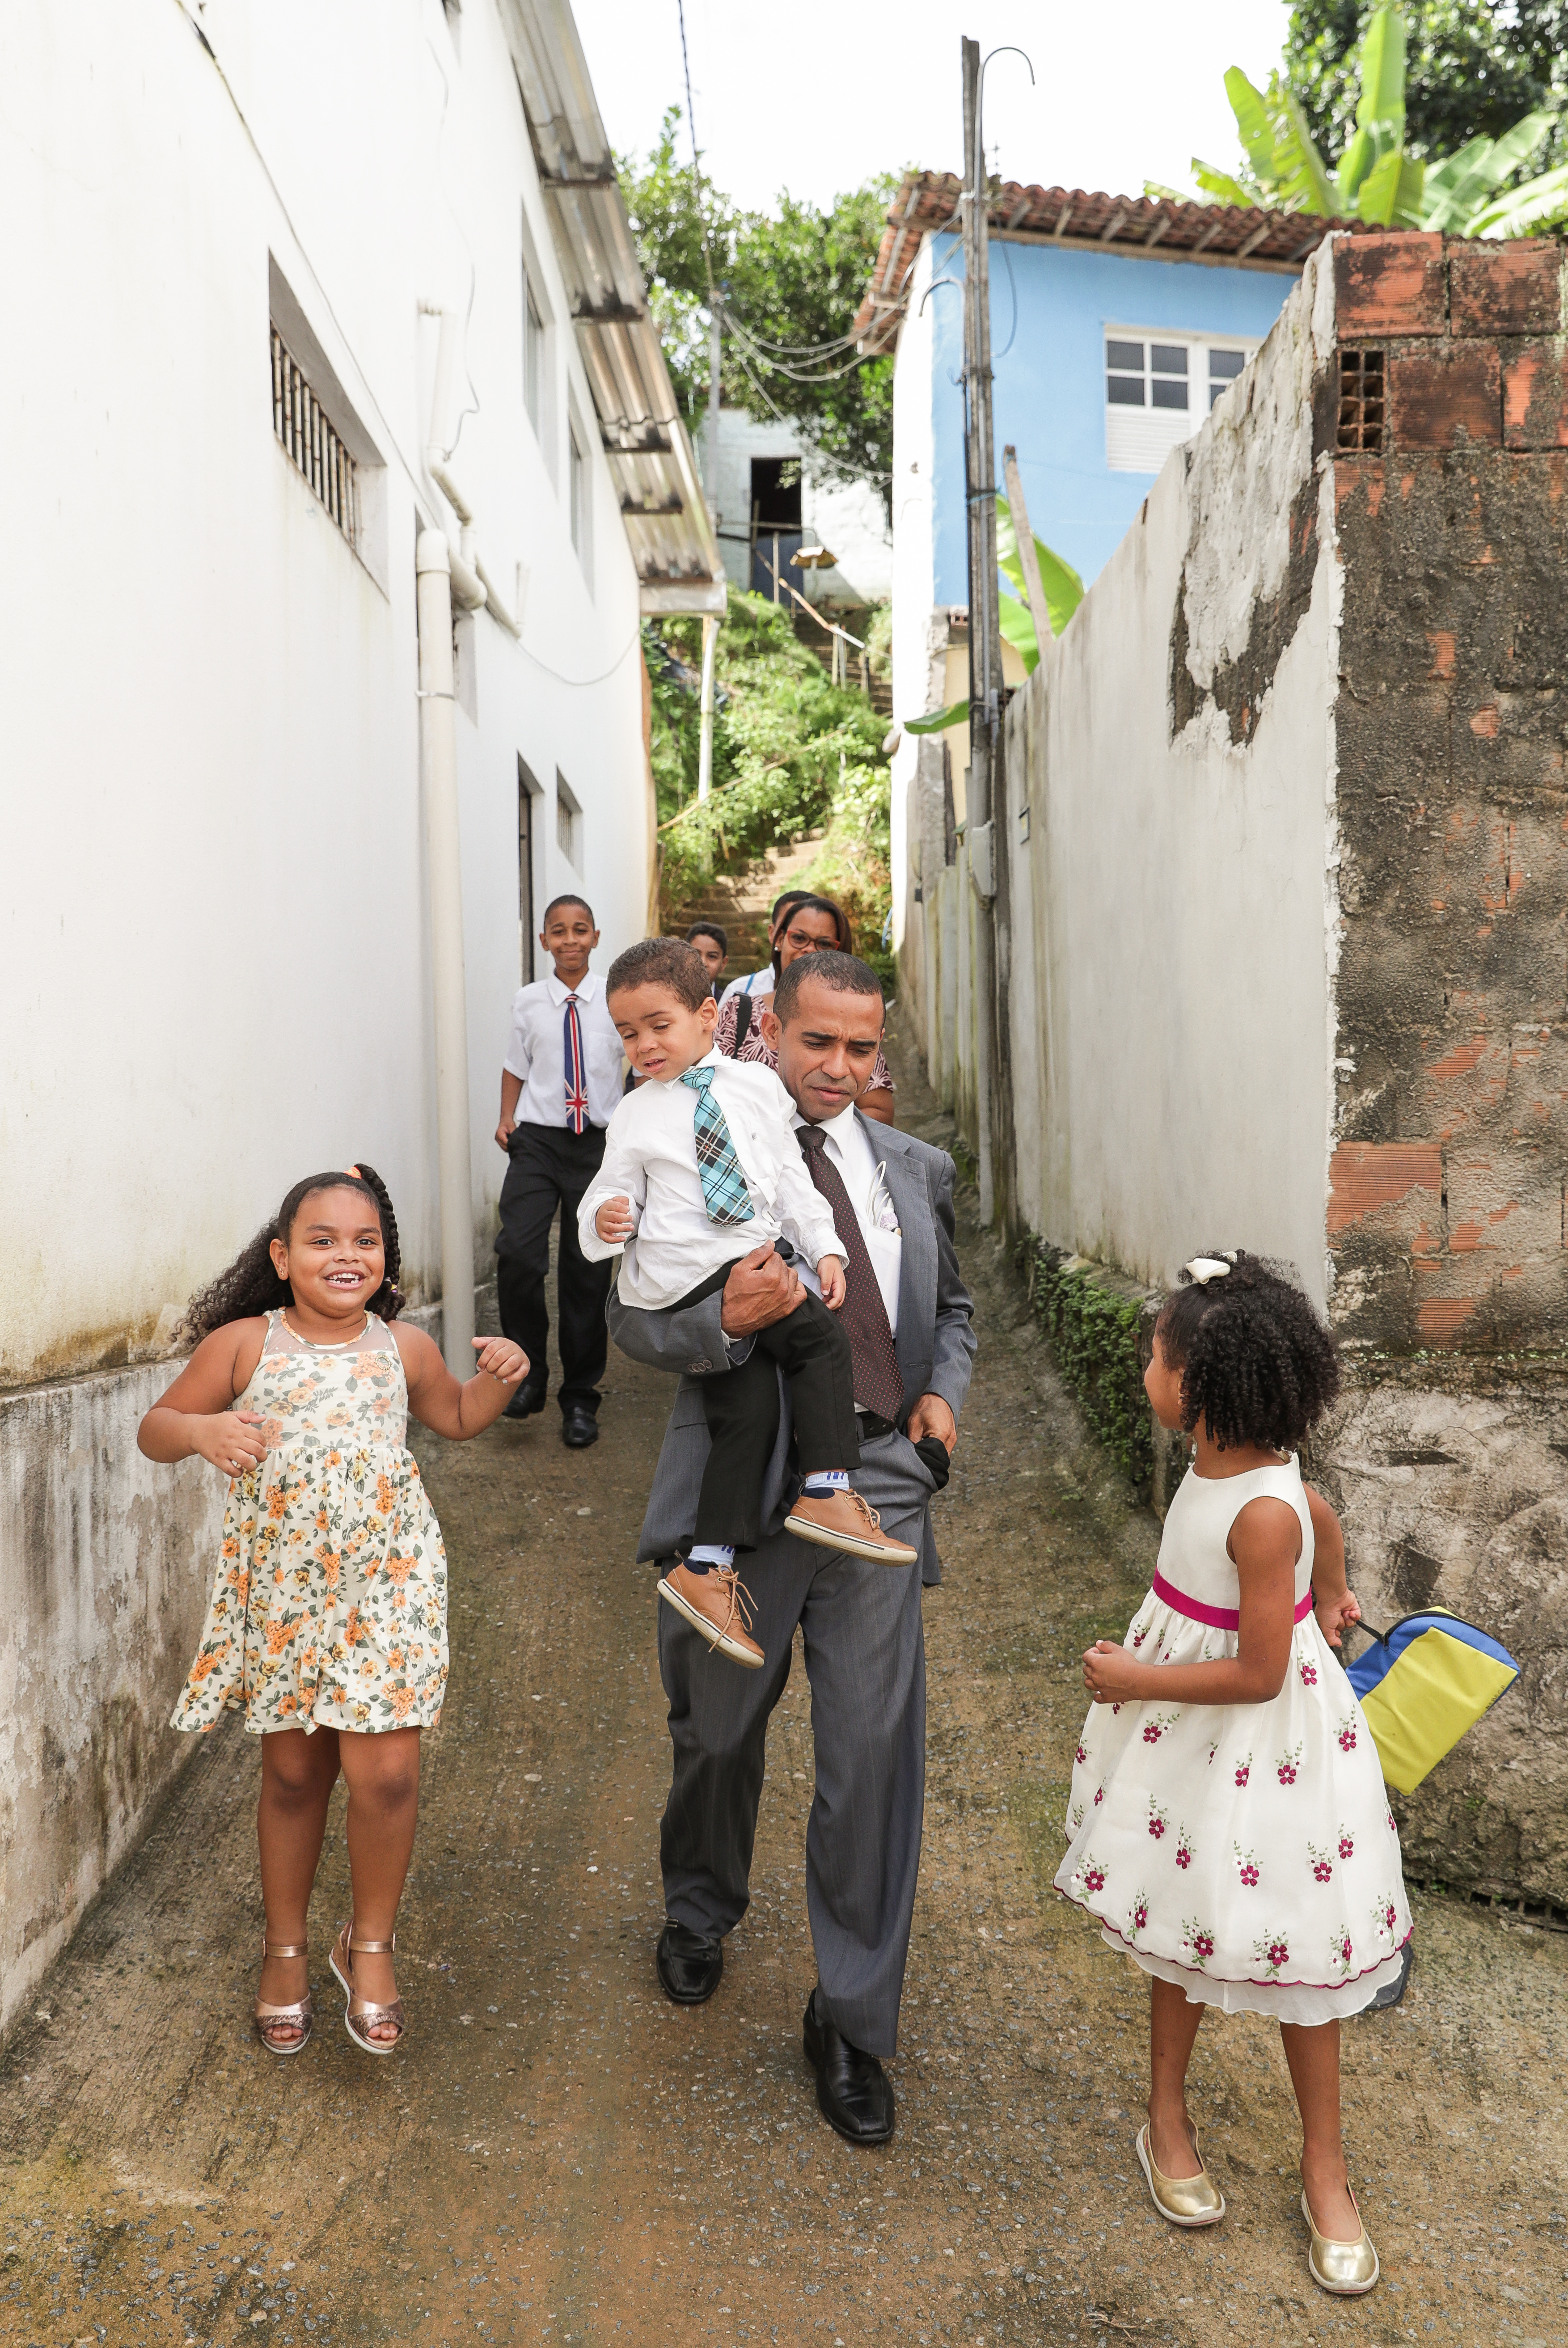 Edivaldo Brito carries his son, Helã, 3, while leaving for church with family members, including his niece, Lais Brito, 4, left, and daughter, Rebeca Brito, 6, in Cabo de Santo Agostinho, Pernambuco, Brazil on Sunday, May 27, 2018.